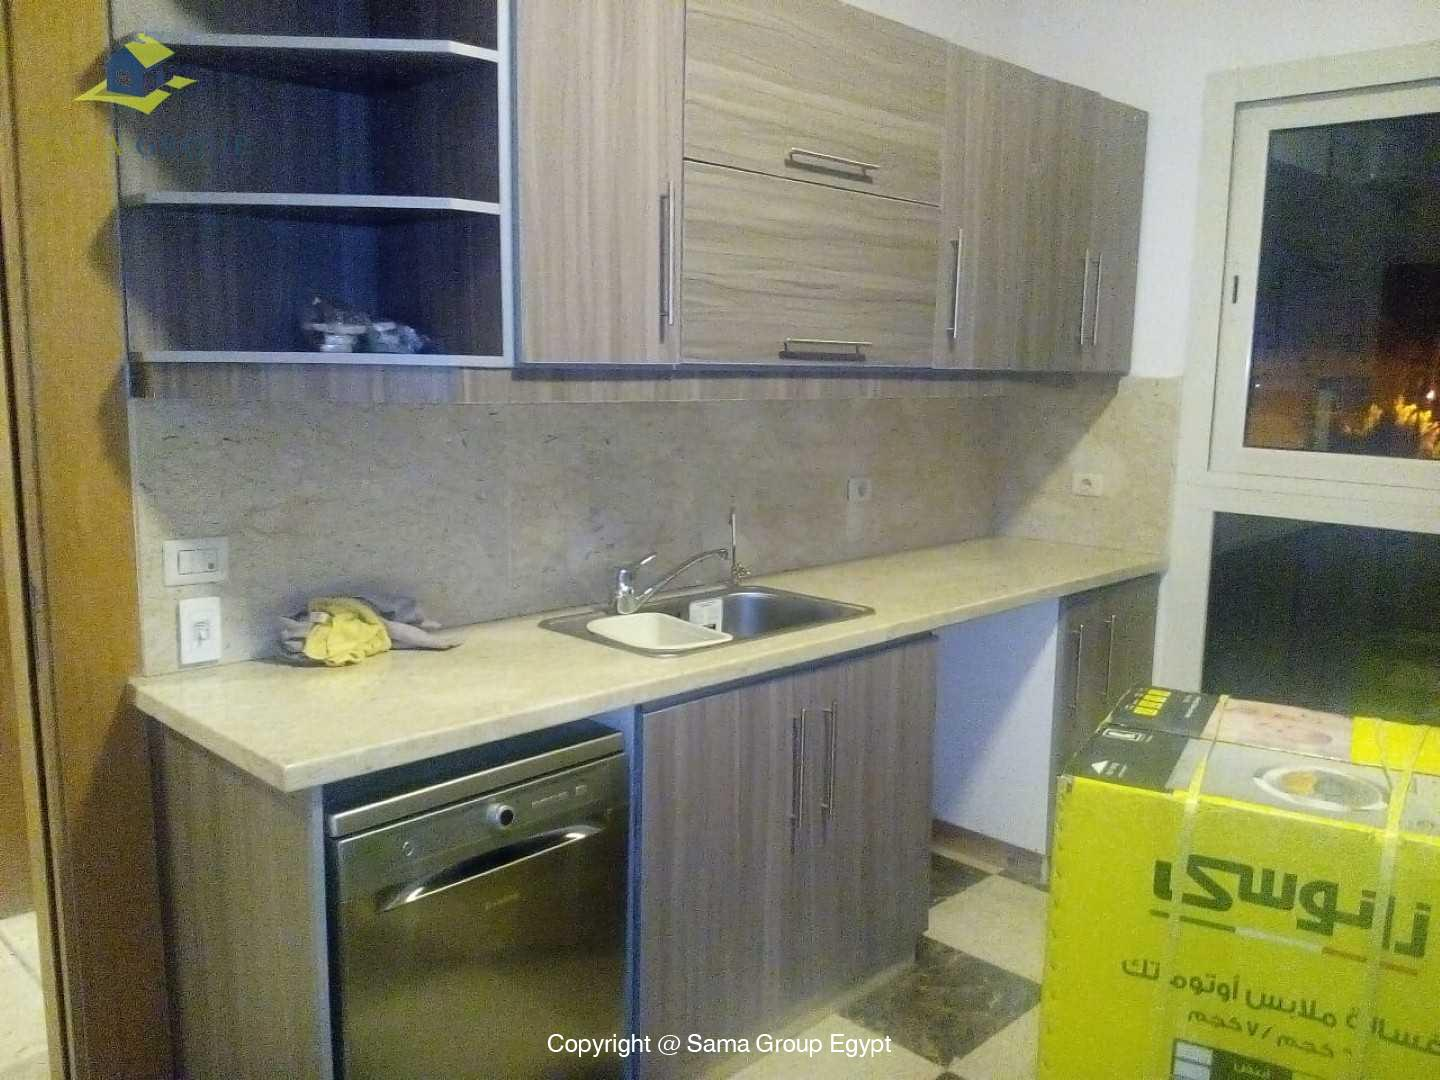 Modern Apartment With Pool Shared For Rent In Maadi,Modern Furnished,Apartment NO #13